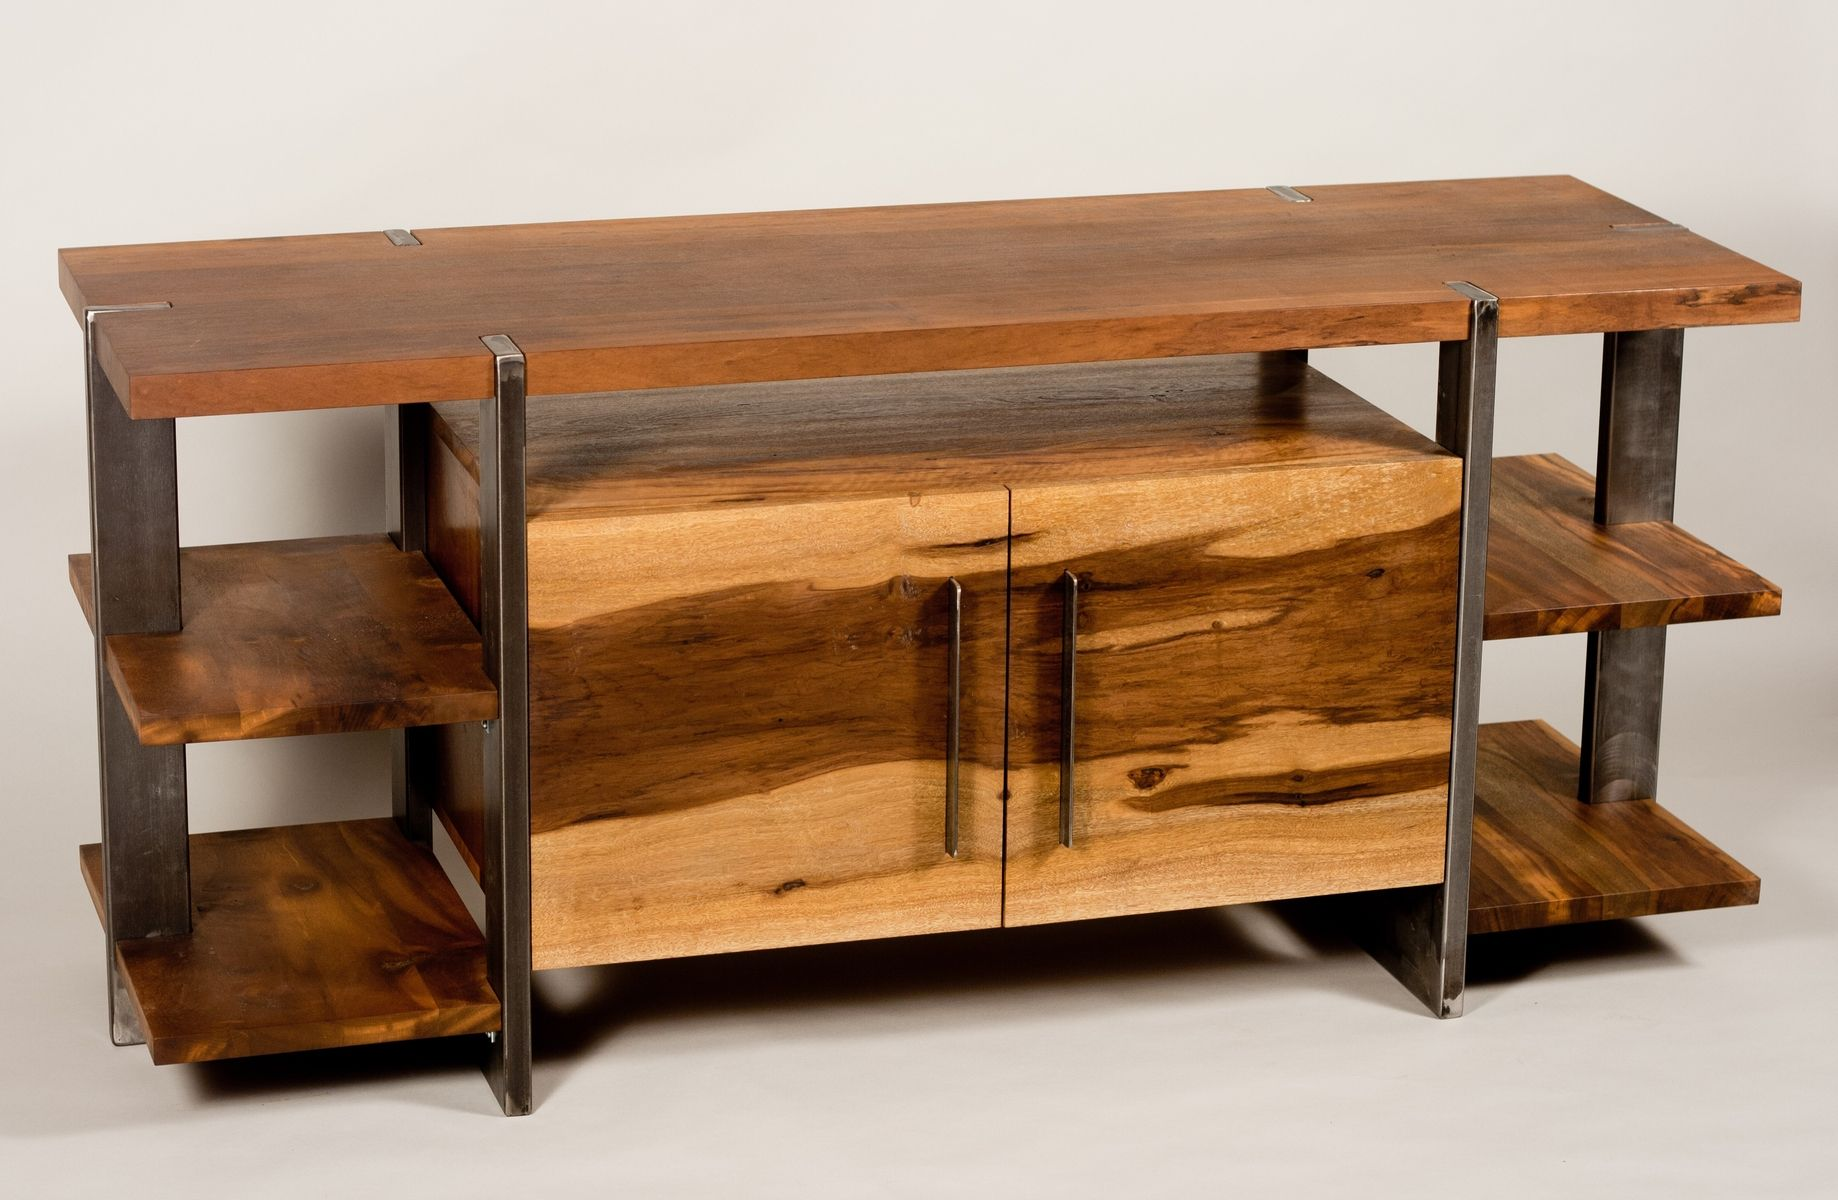 handmade entertainment center by trevor thurow custom furniture design. Black Bedroom Furniture Sets. Home Design Ideas